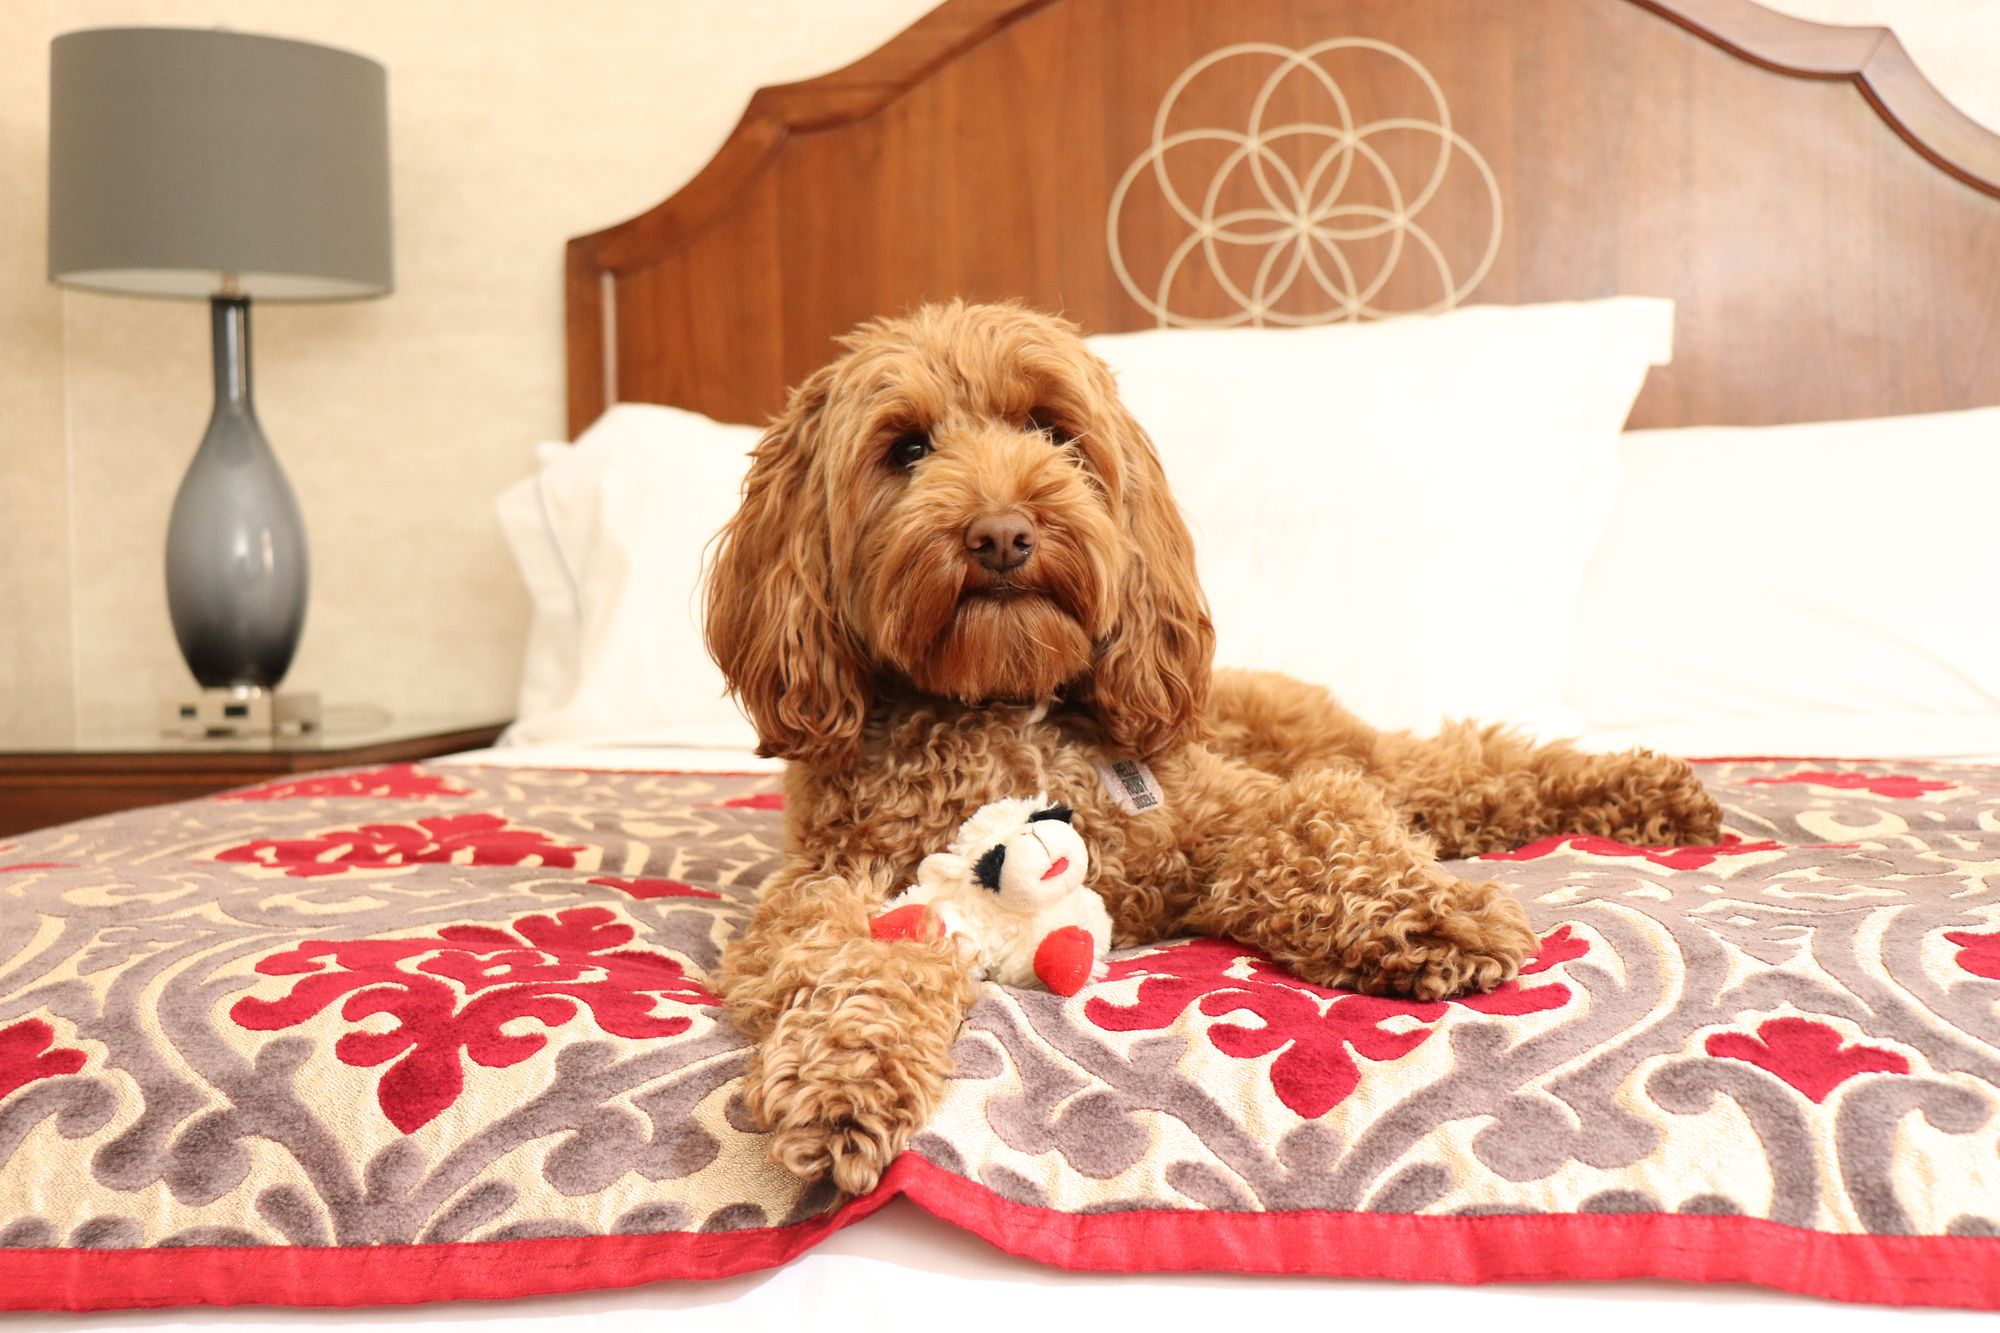 Labradoodle laying on bed with chew toy